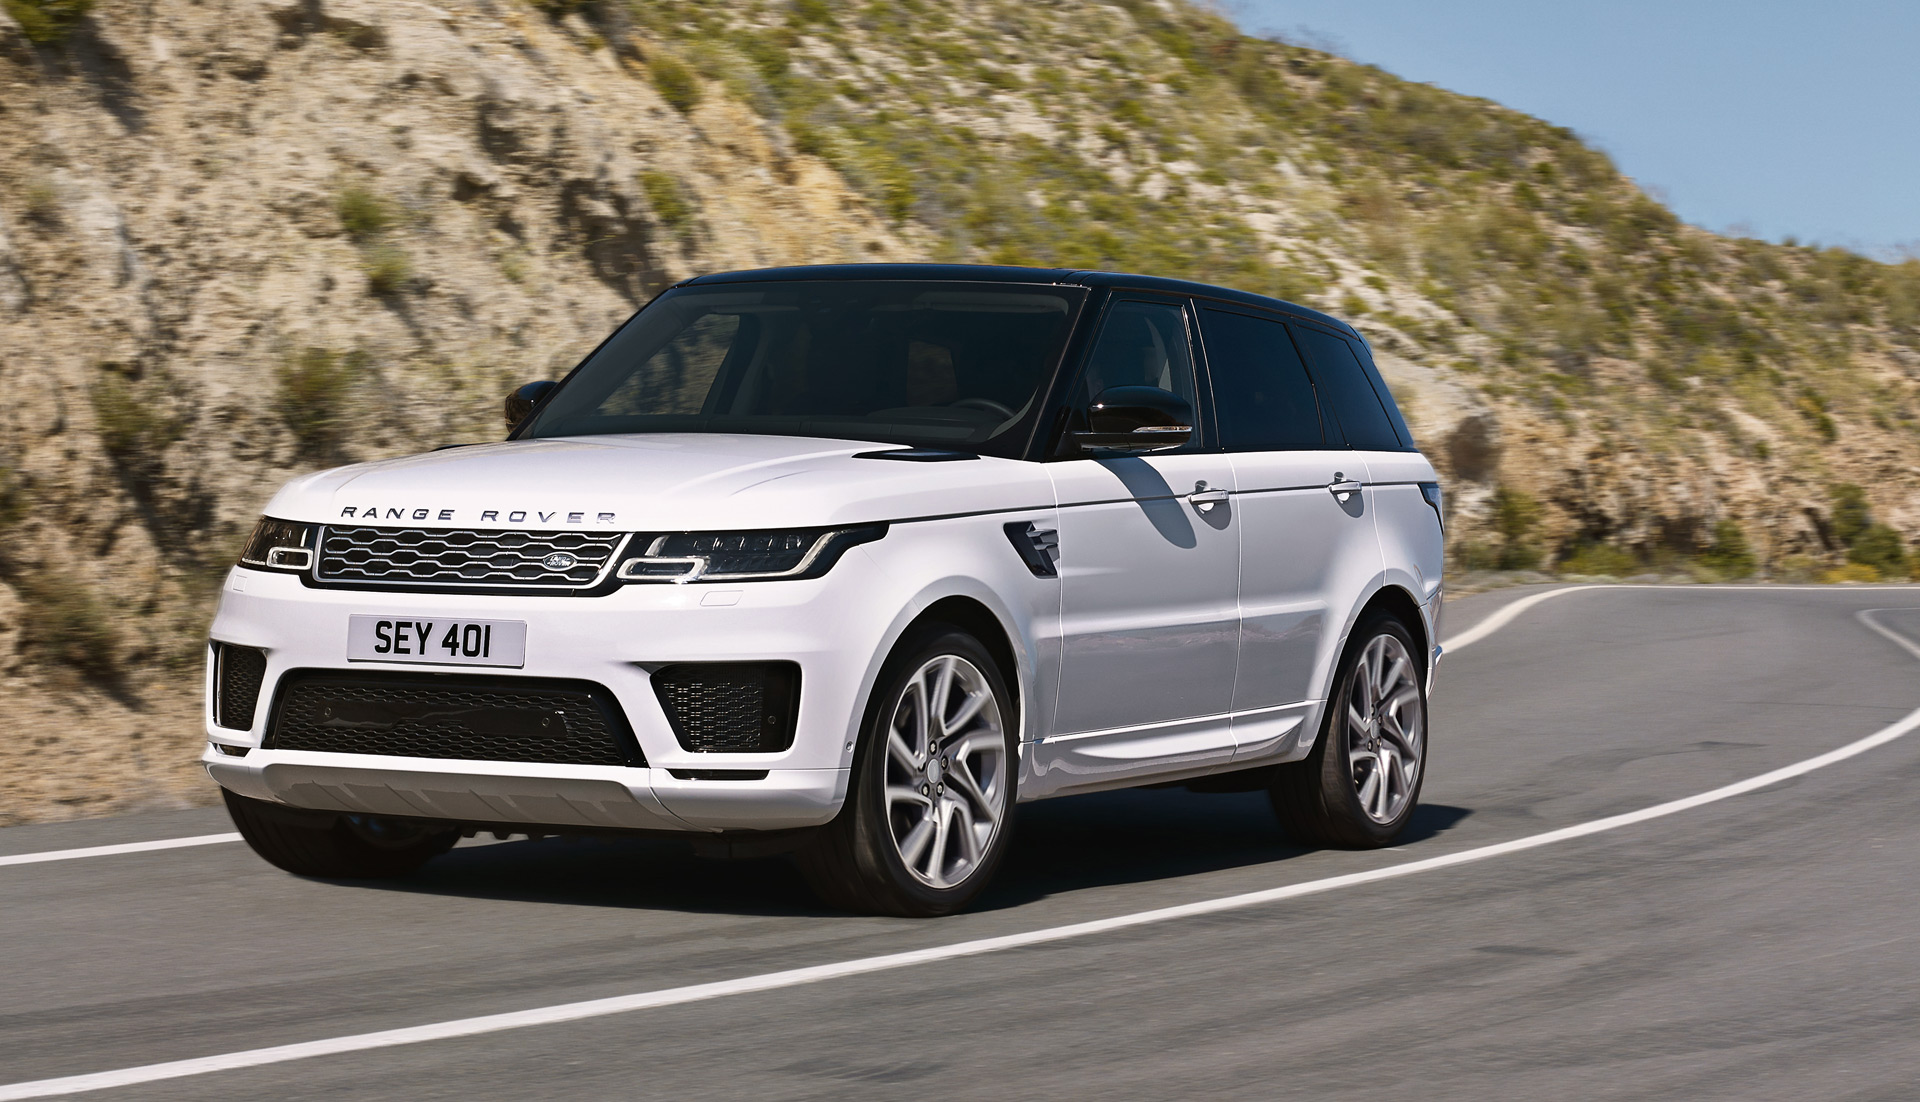 2019 range rover sport p400e plug in hybrid on sale in us in summer 2018 technical details. Black Bedroom Furniture Sets. Home Design Ideas